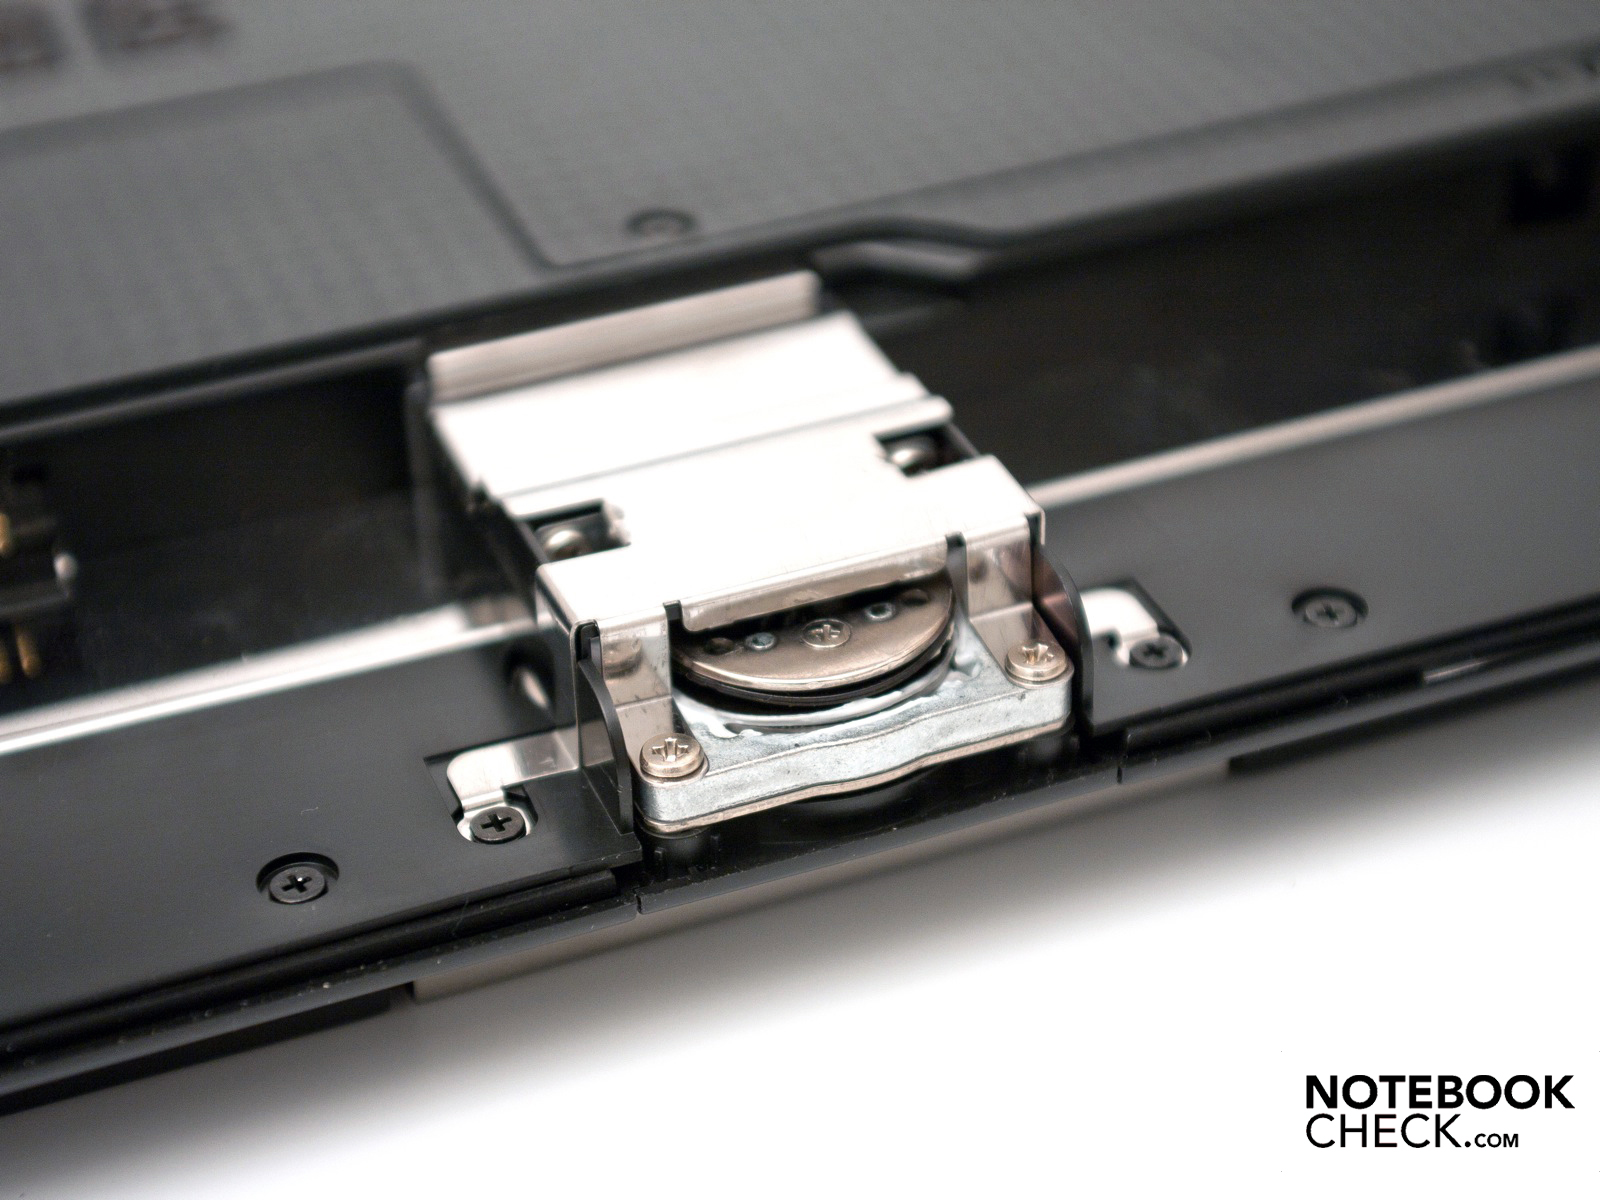 Test Lenovo IdeaPad S10-3t Convertible - Notebookcheck.com Tests